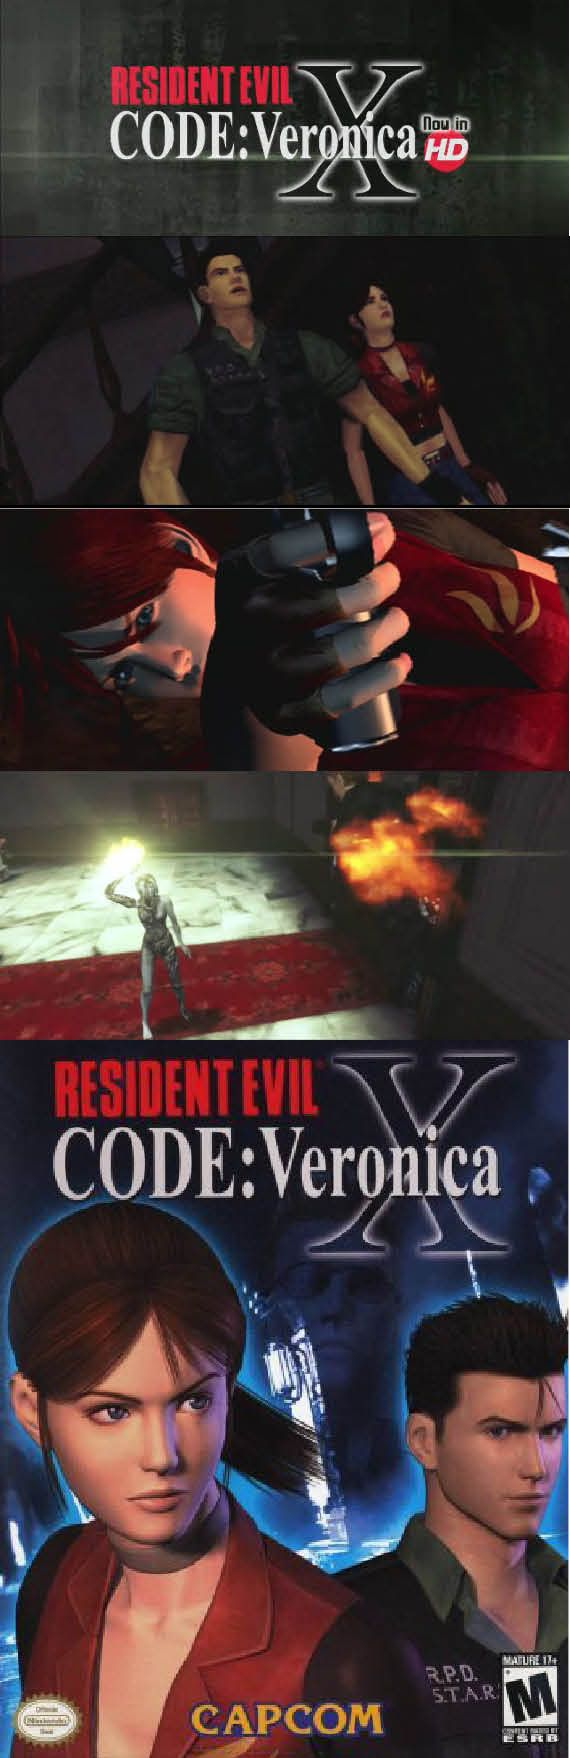 #ResidentEvil Claire finally finds Chris in #CodeVeronica. #RetroGamer http://www.levelgamingground.com/resident-evil-code-veronica-review.html